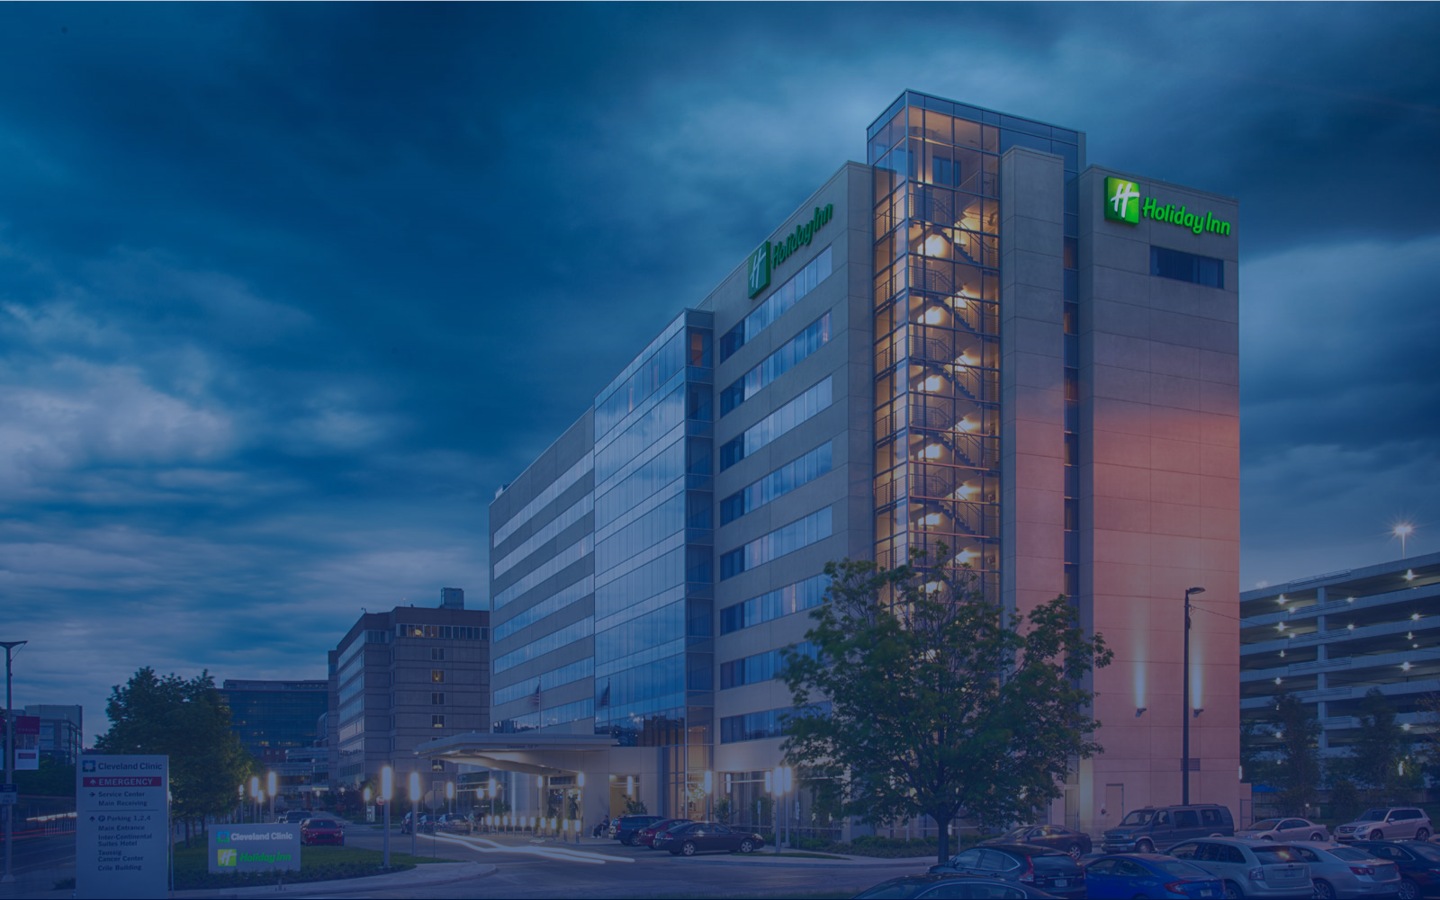 Exterior of Holiday Inn in Cleveland